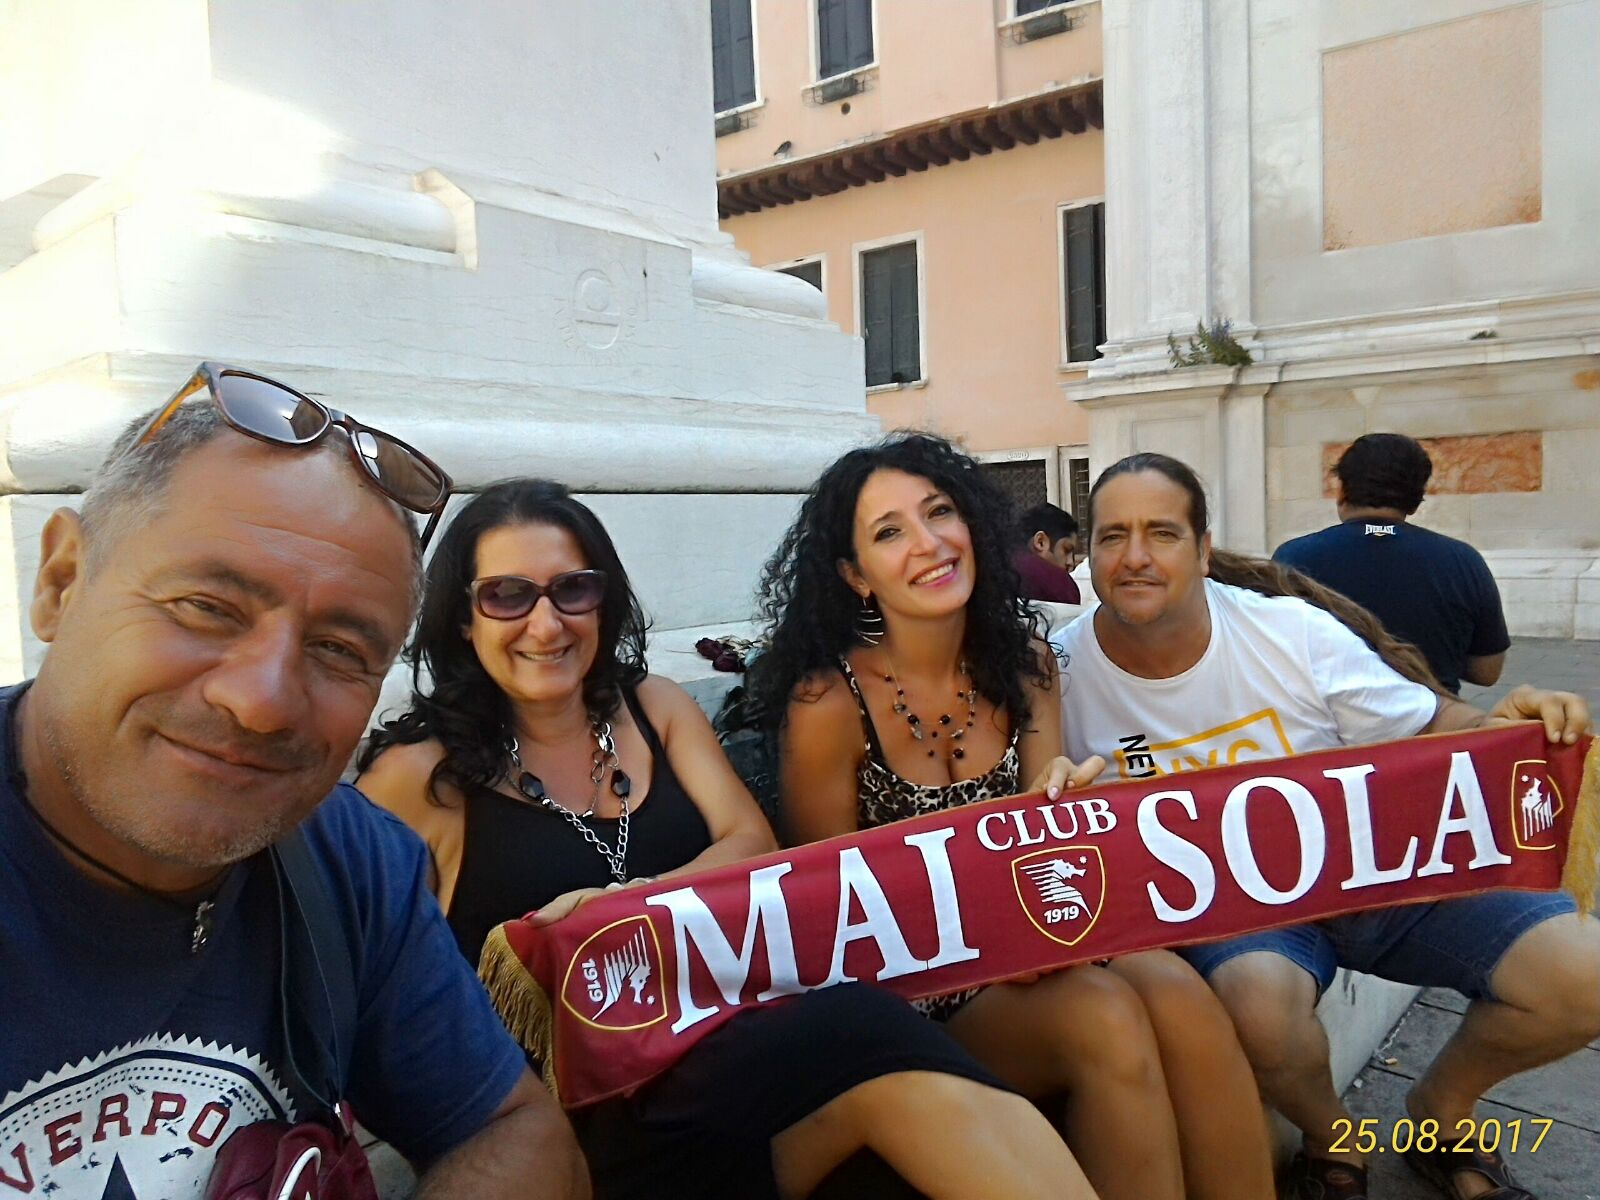 club mai sola - salernitana